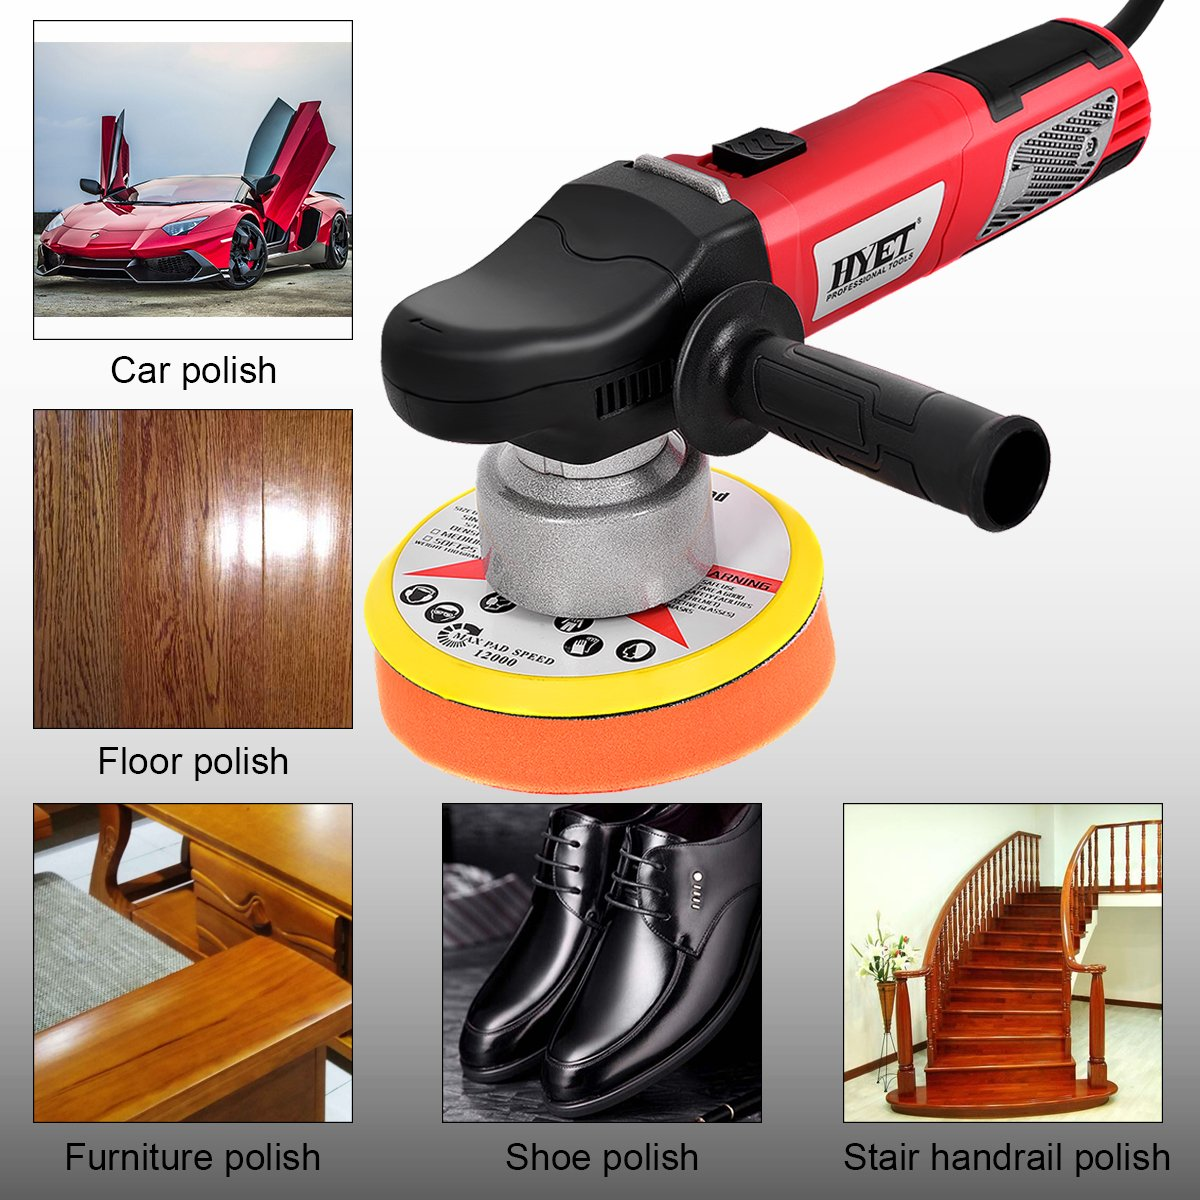 Goplus orbital sander featured image 5